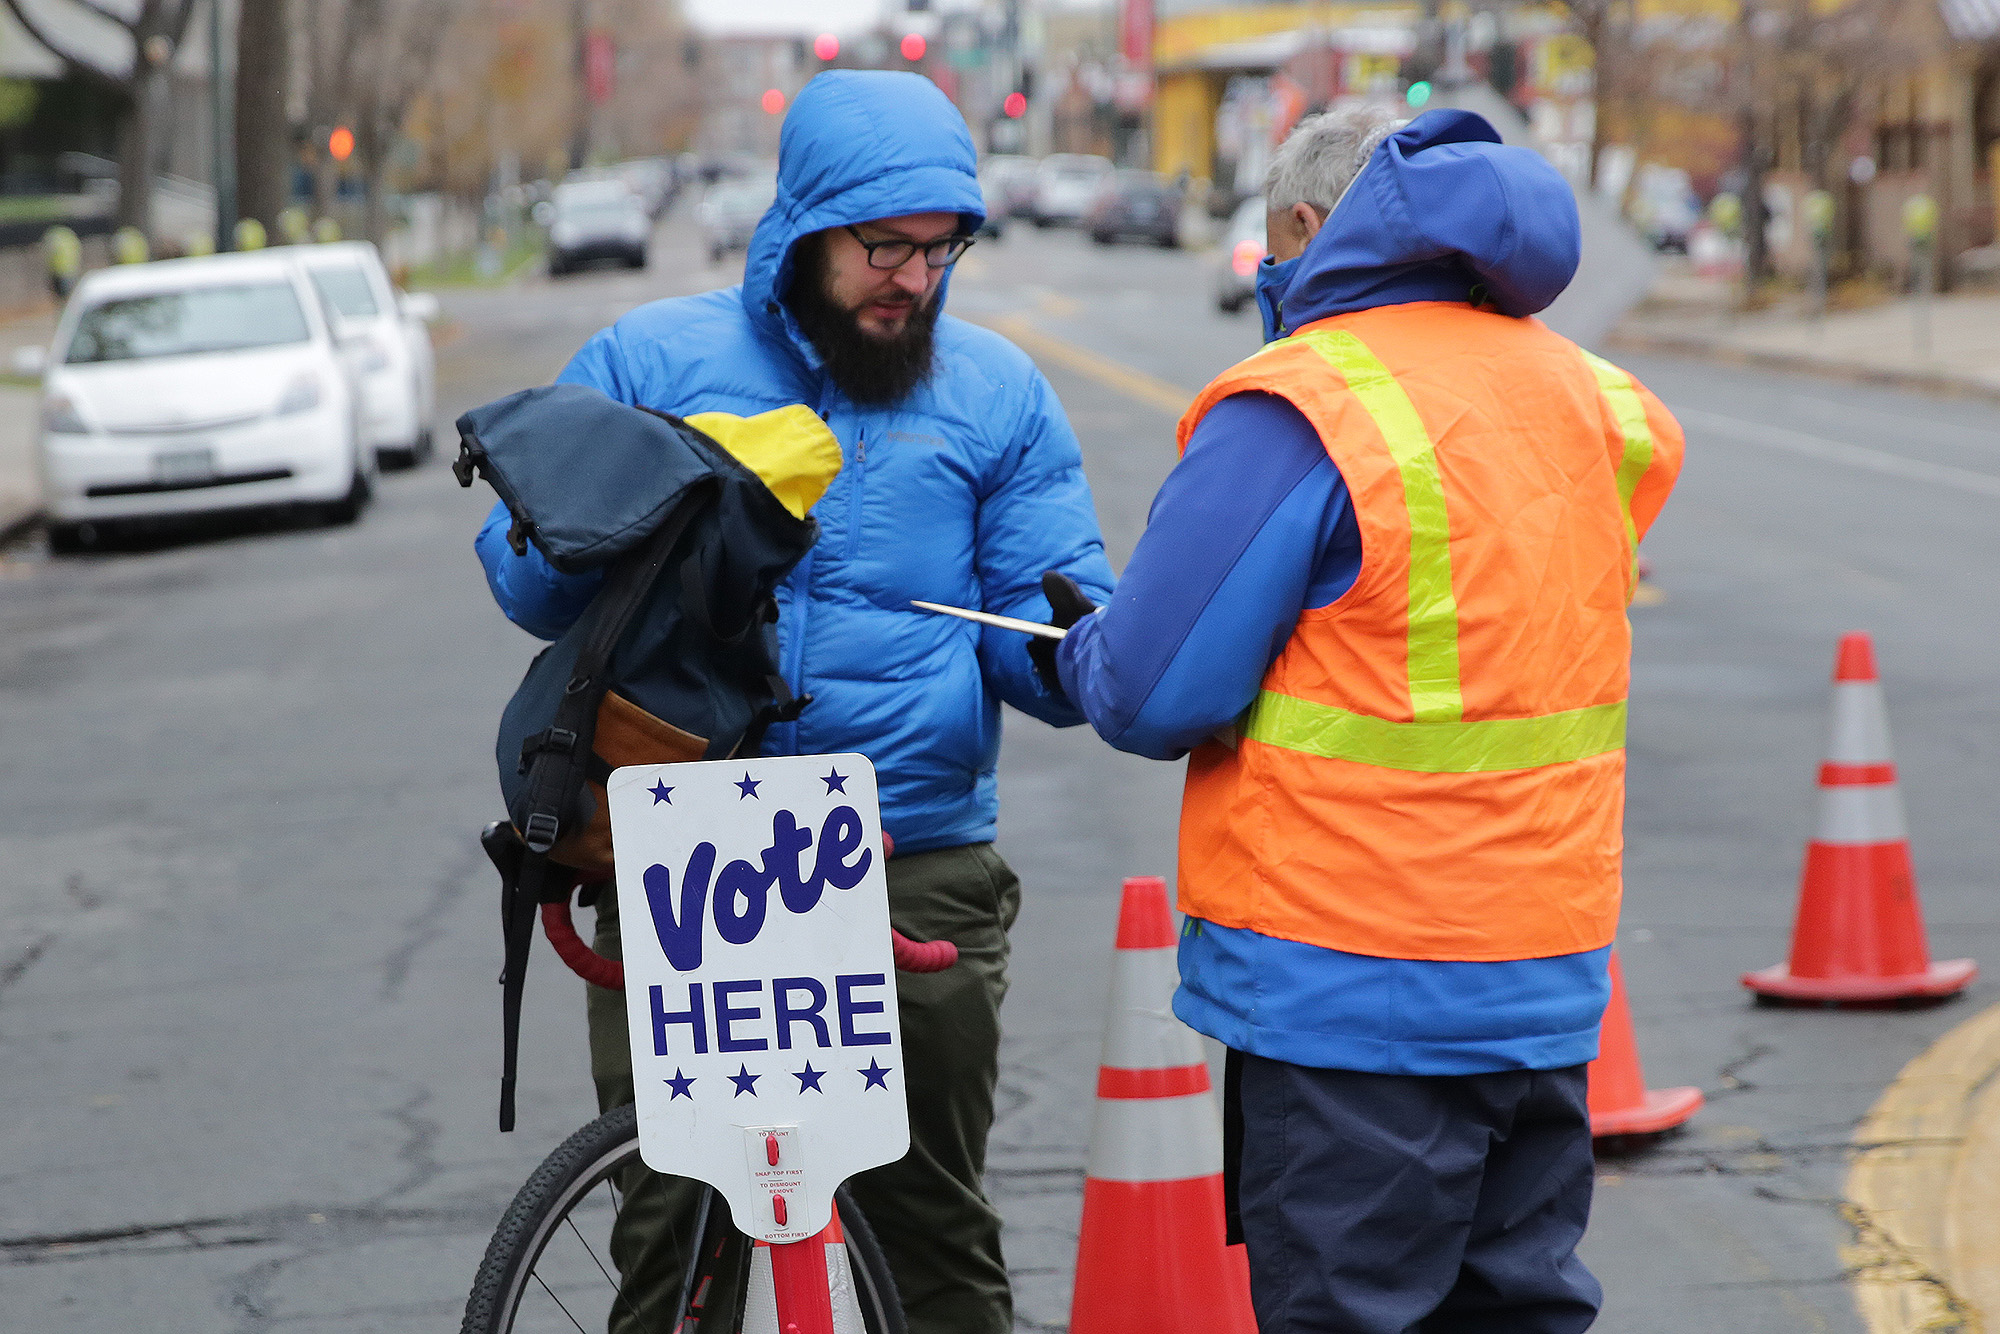 "<p><span style=""color: rgb(64, 69, 64);"">The ballot drop off station on Bannock Street in downtown Denver on Election Day 2017.</span></p>"